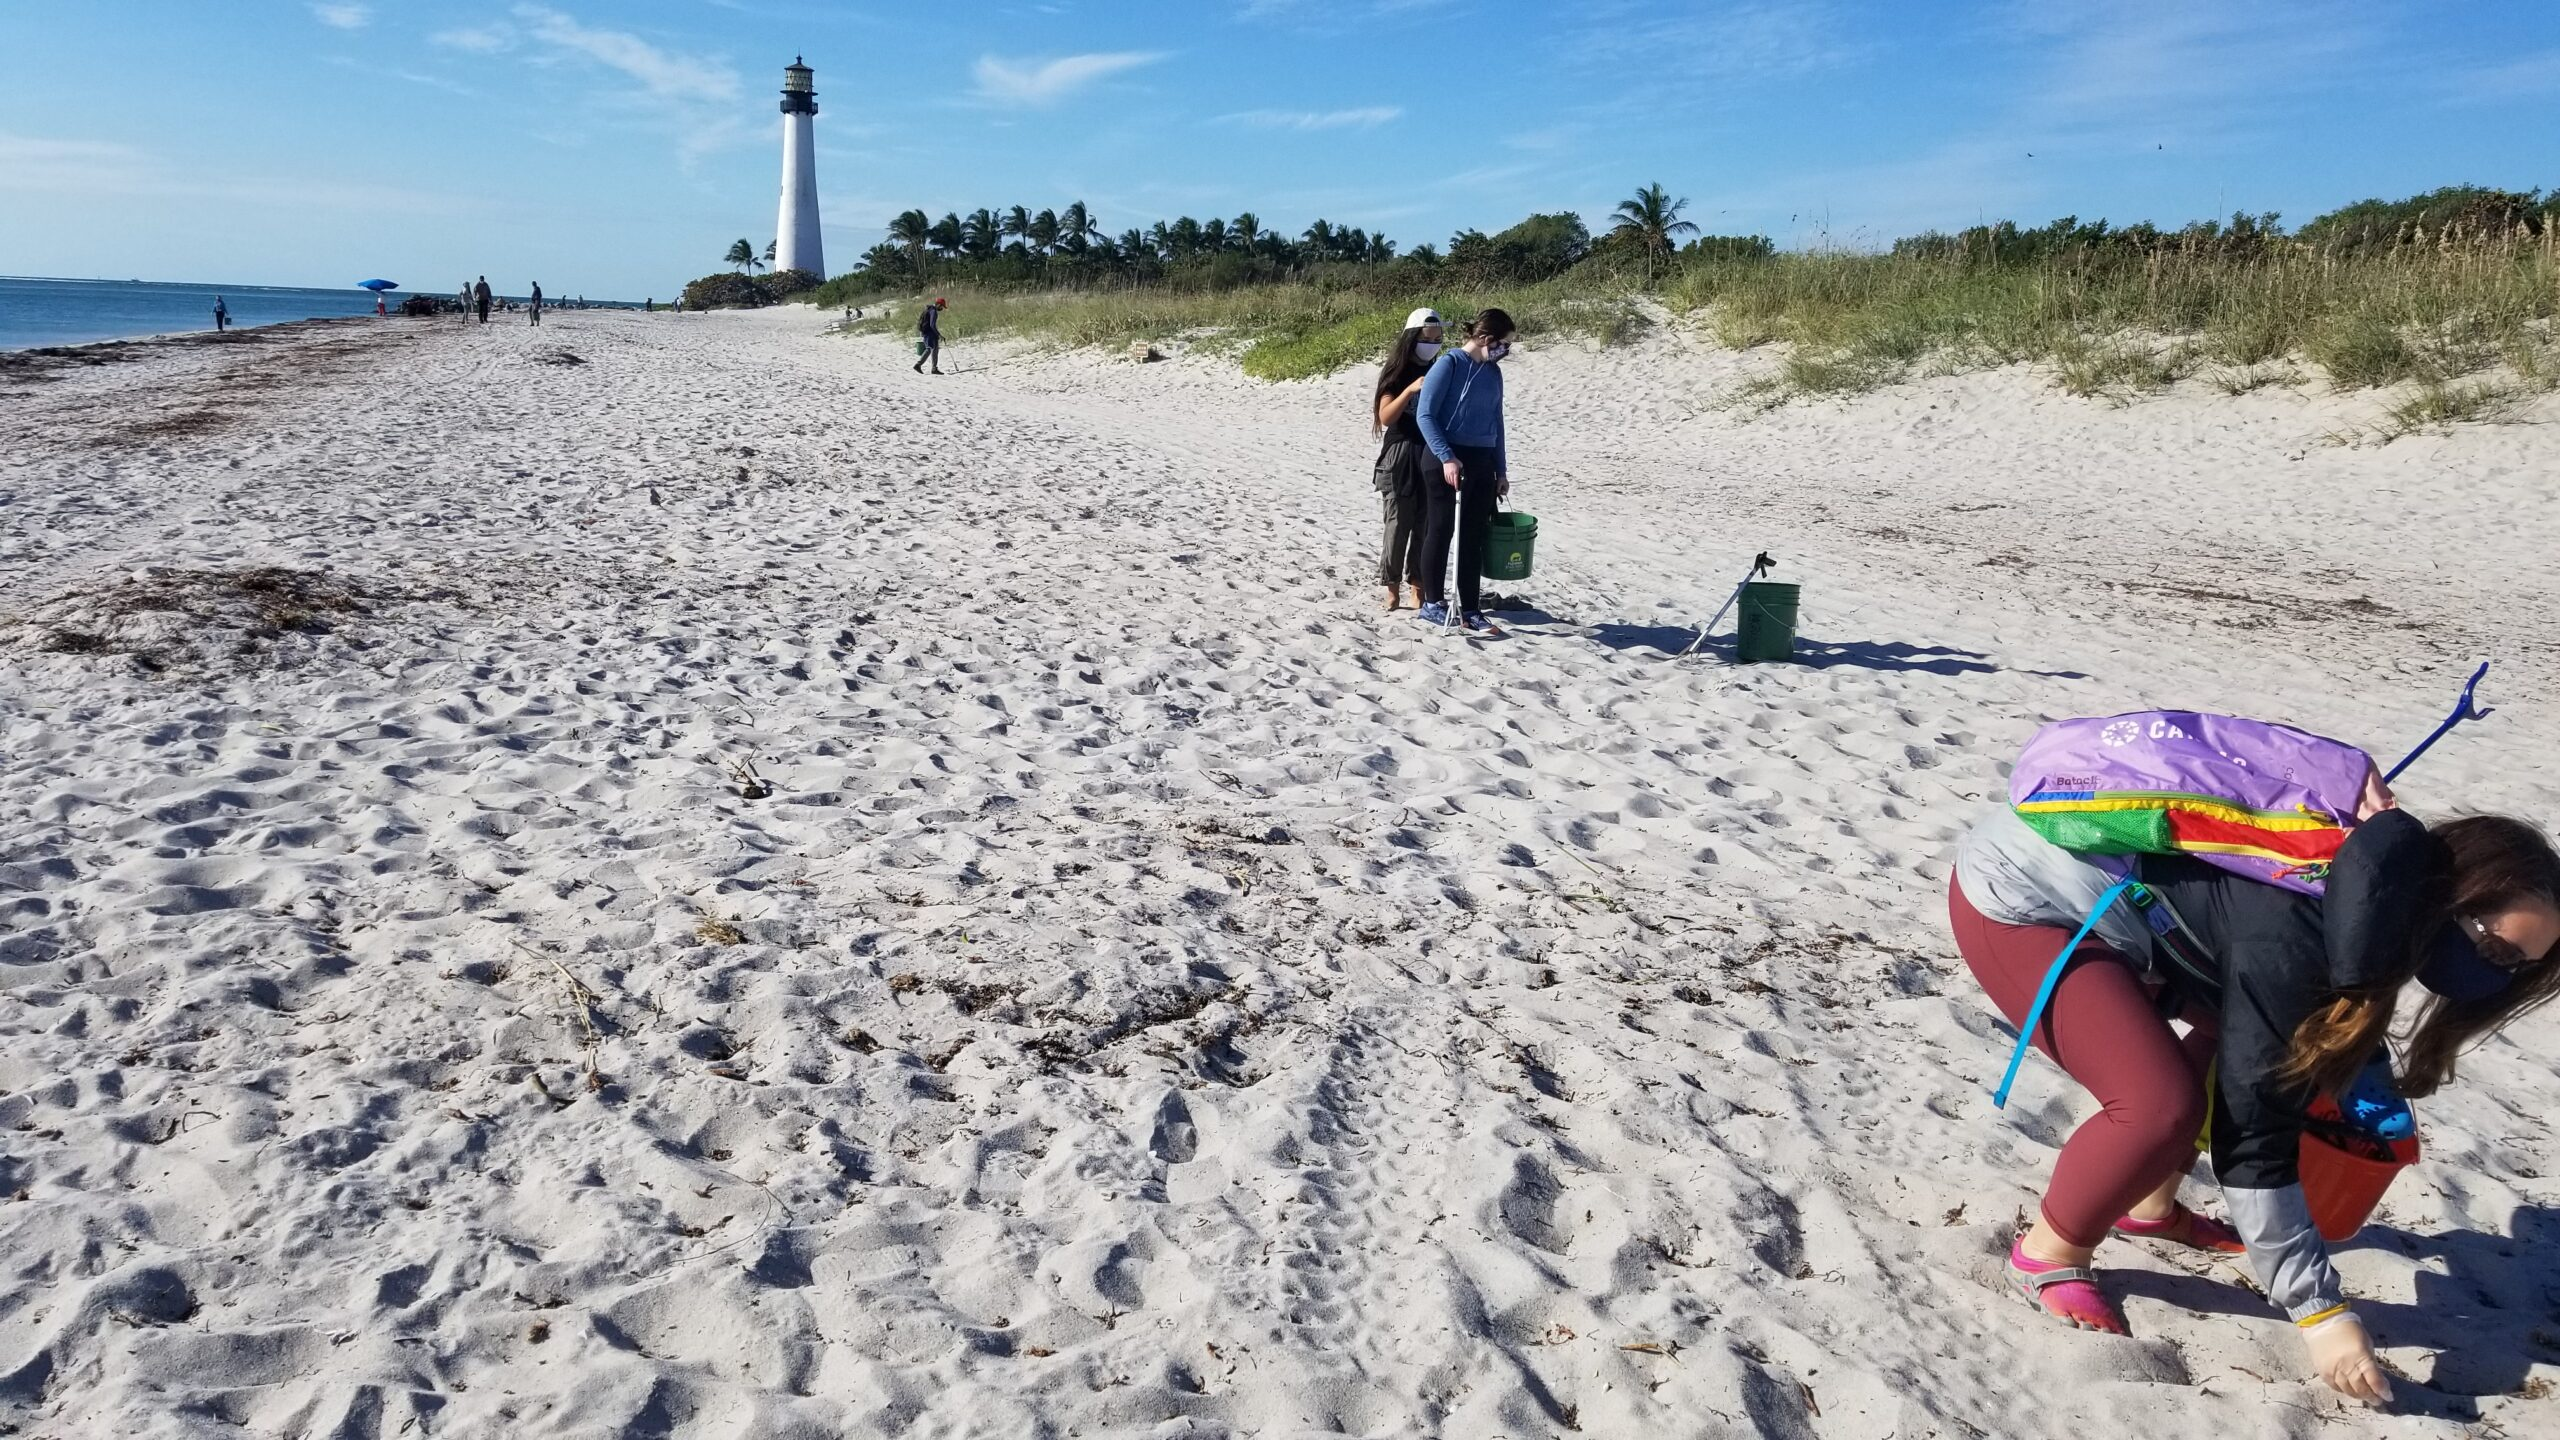 Bill Baggs Cape Florida beach cleanup day January 2021